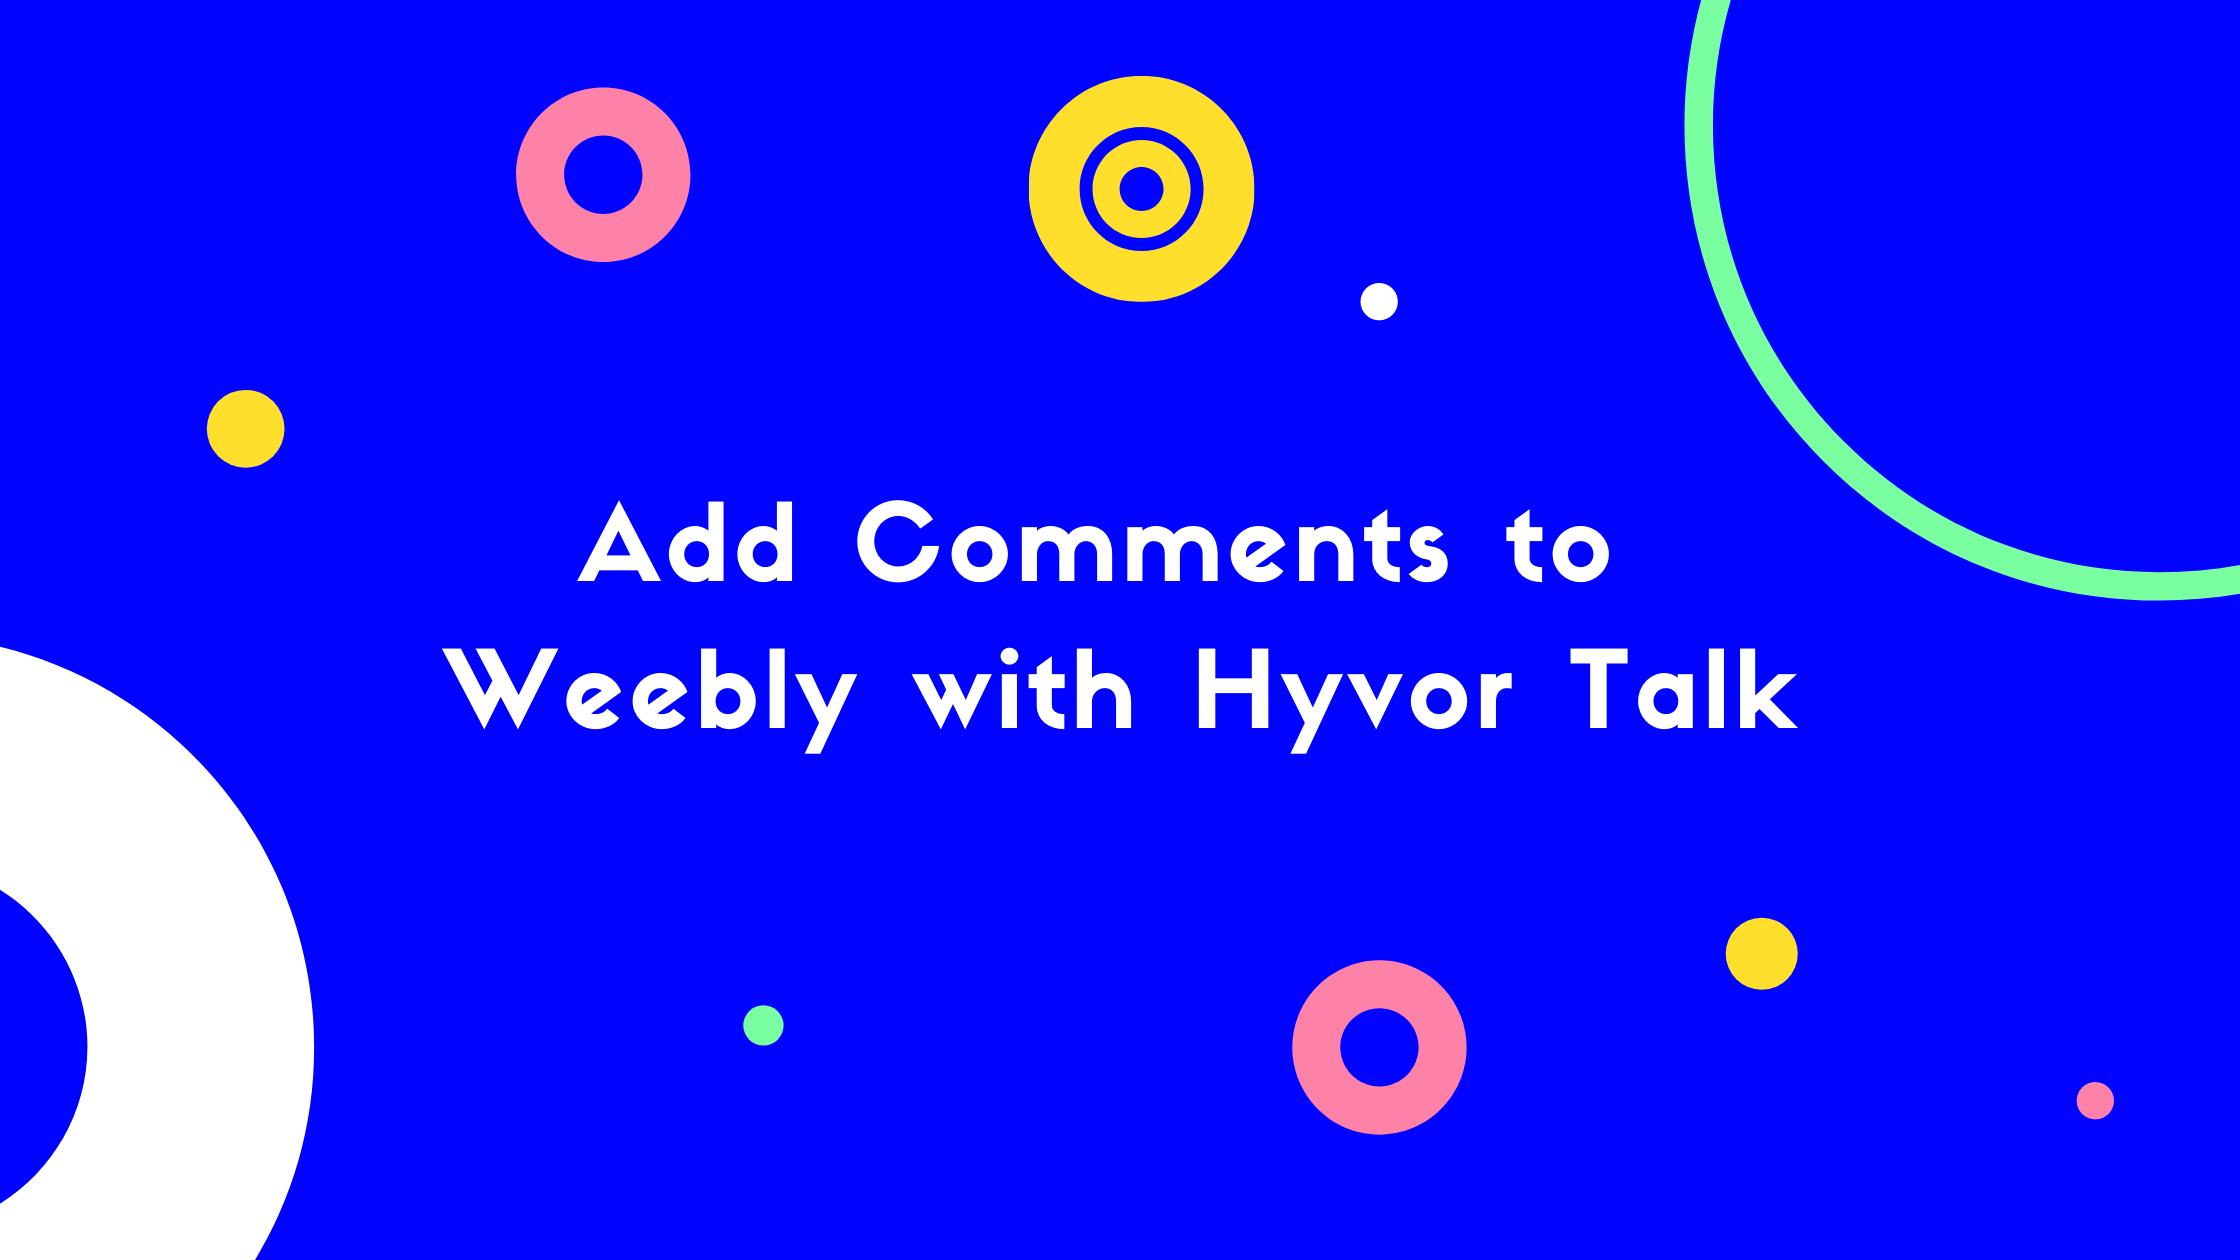 Add Comments to Weebly with Hyvor Talk